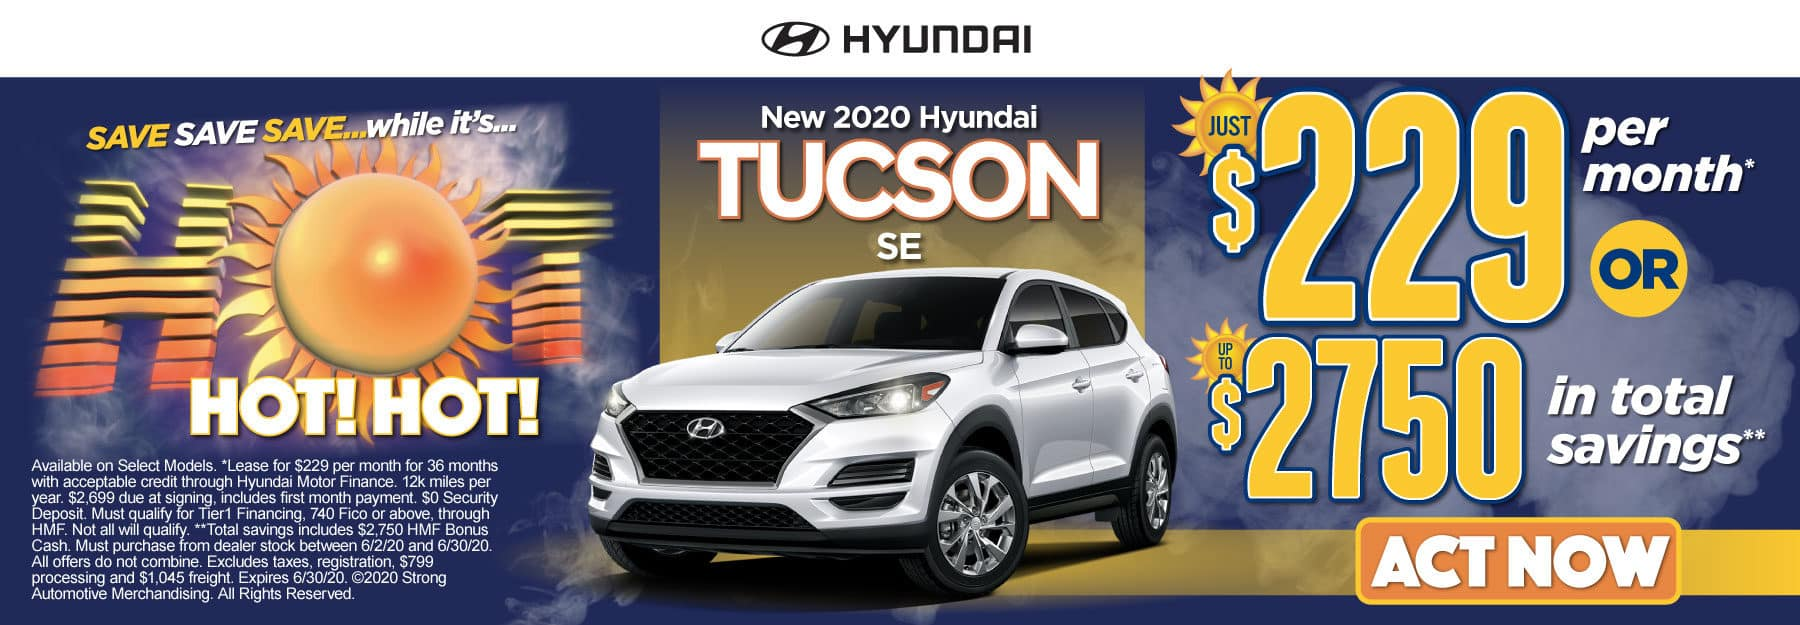 New 2020 Hyundai Tucson - Just $229 per month or up to $2750 in total savings - Click to View Inventory